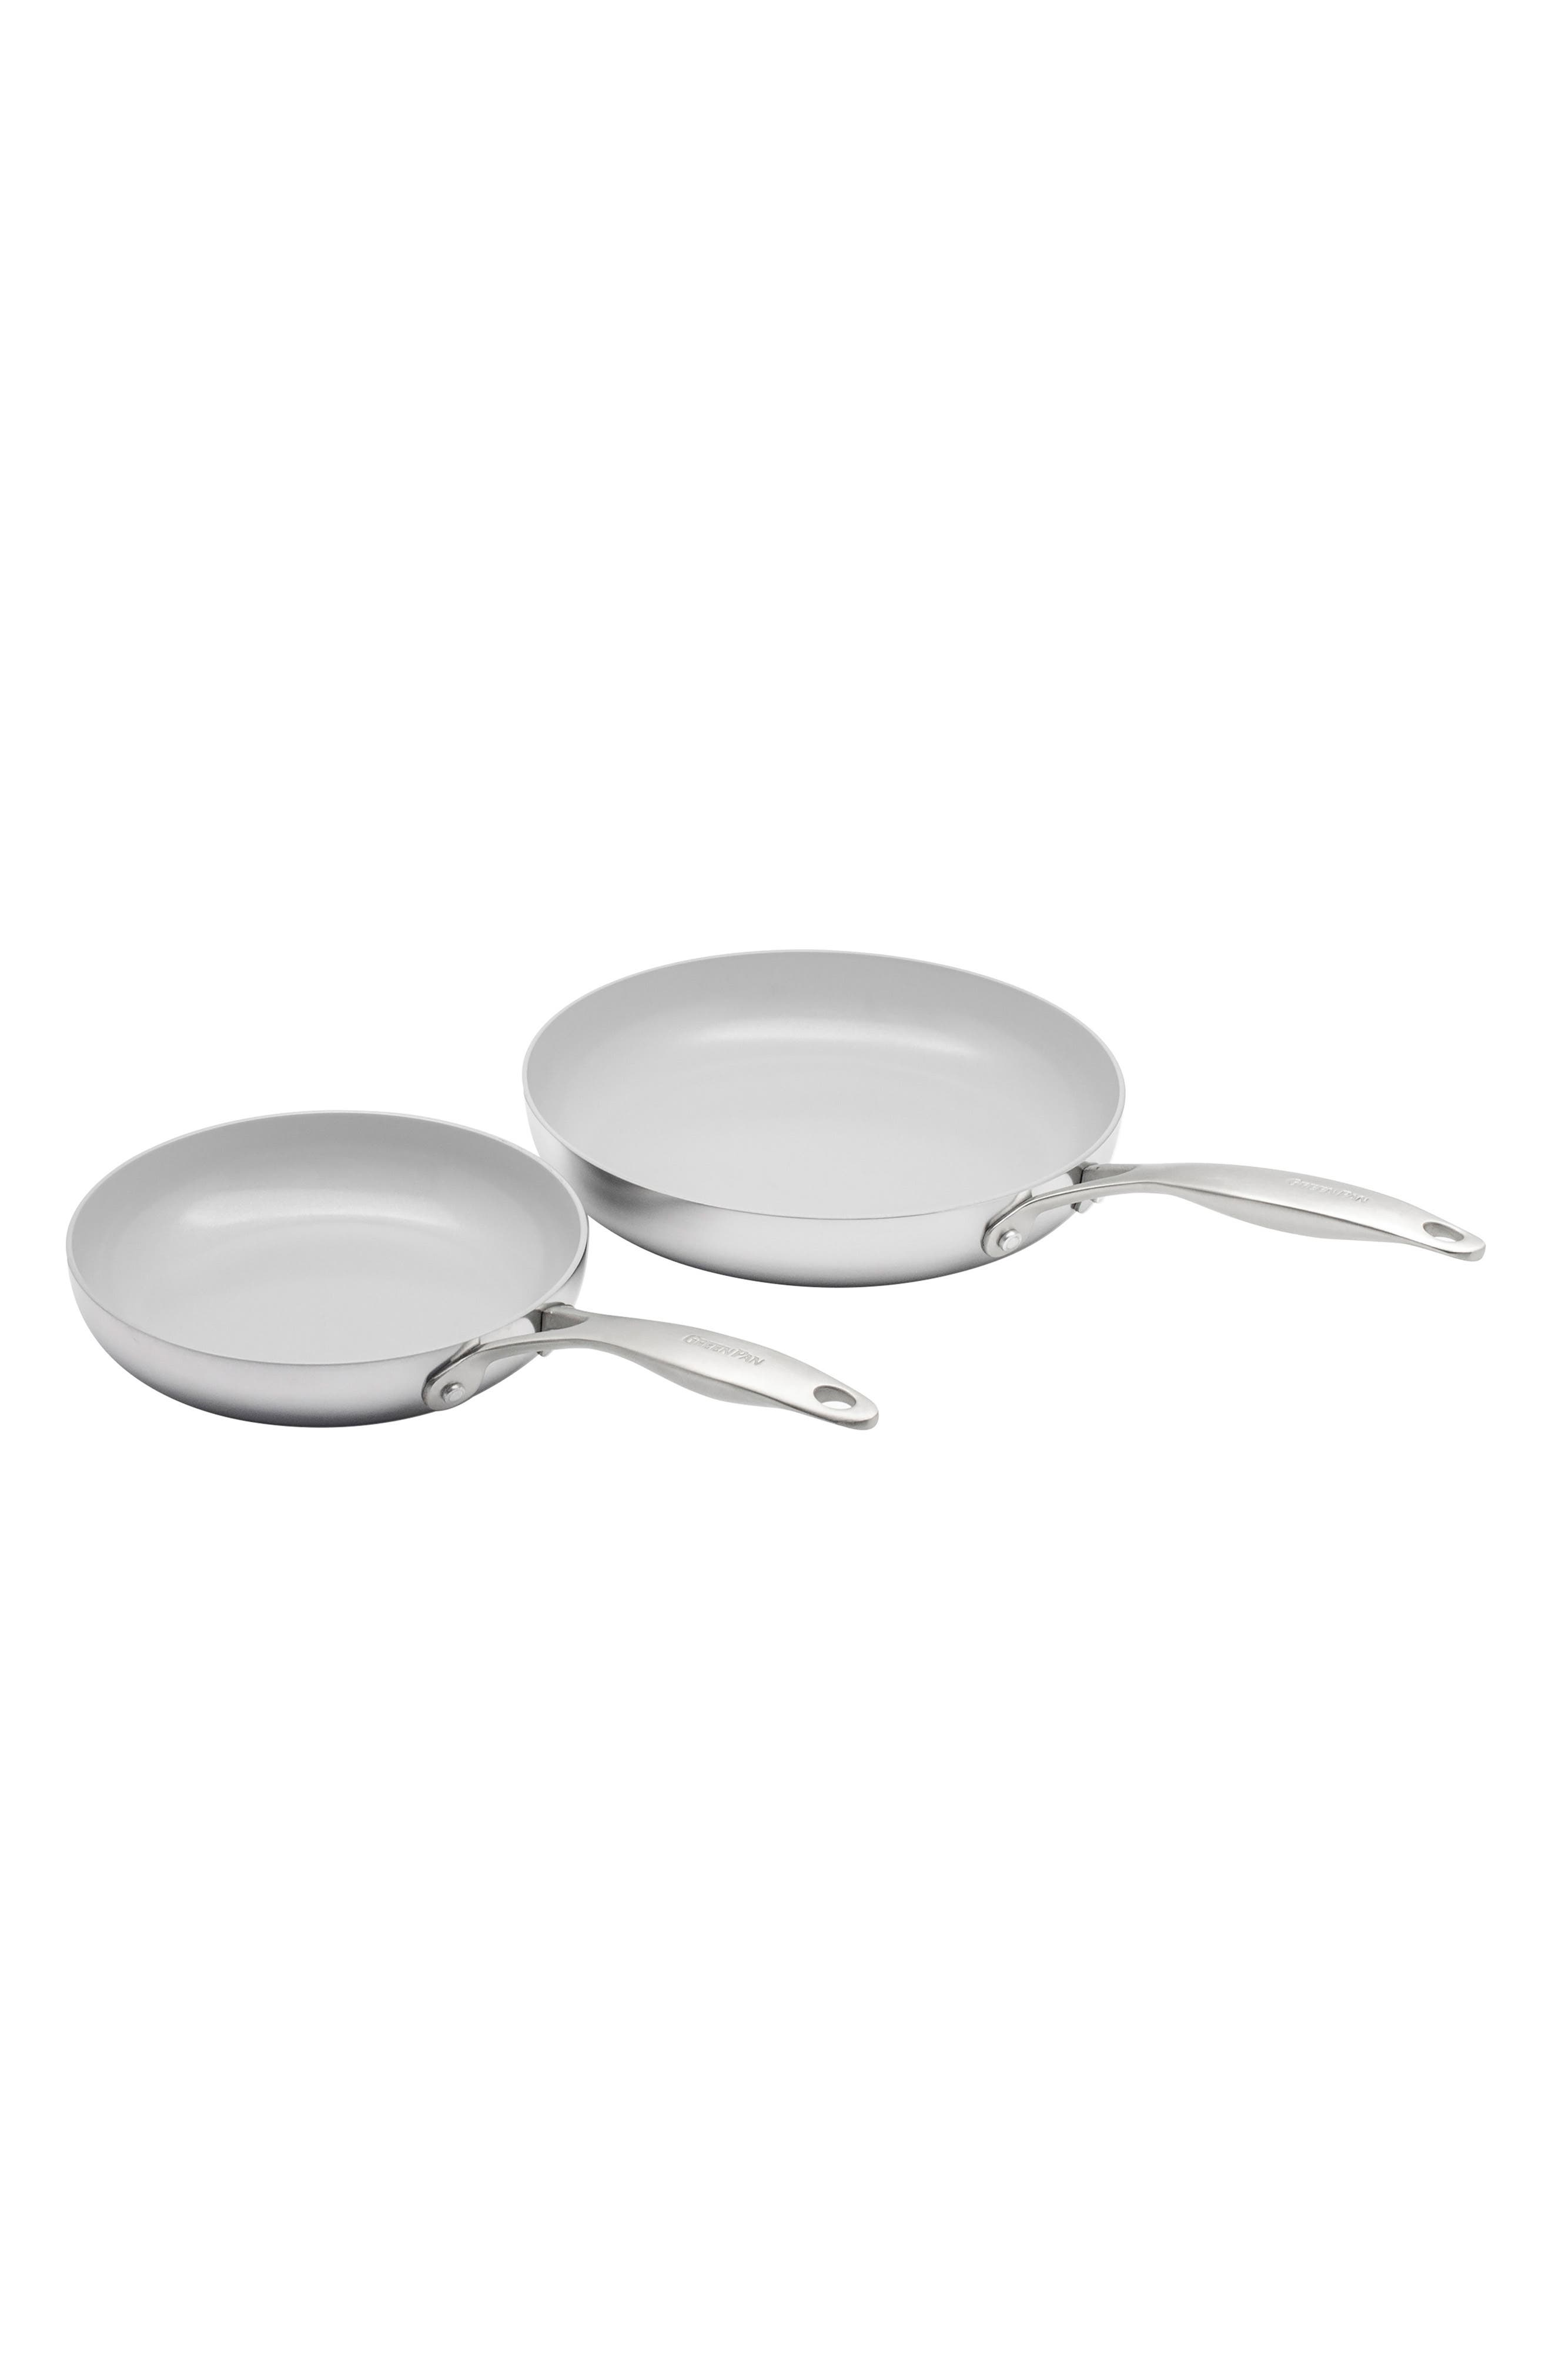 Venice Pro 8-Inch & 10-Inch Multilayer Stainless Steel Ceramic Nonstick Frying Pan Set,                             Main thumbnail 1, color,                             040